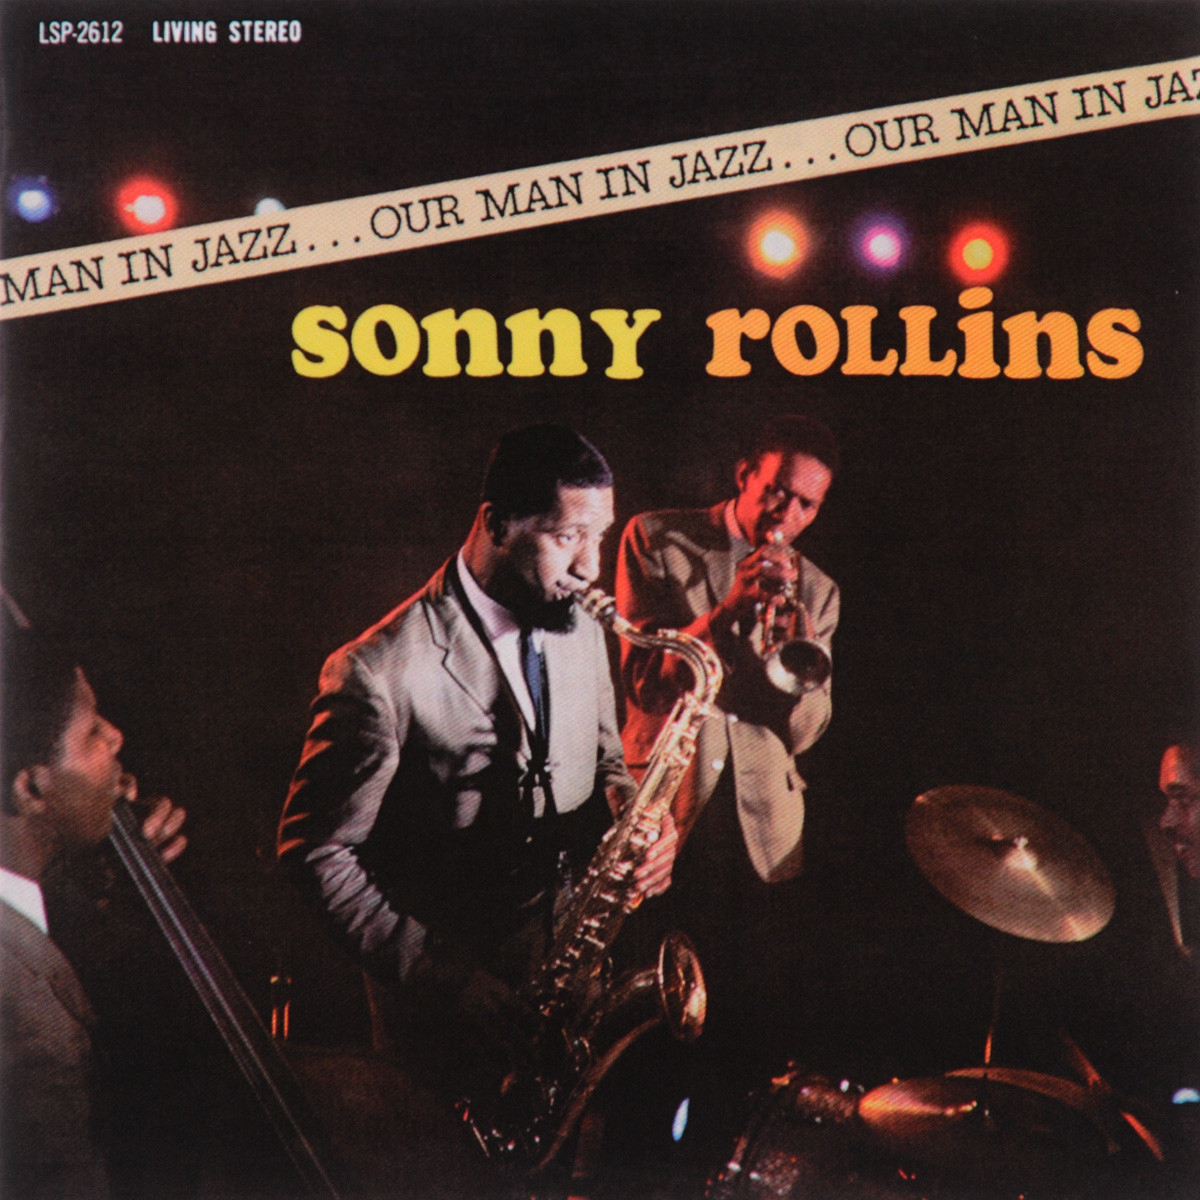 Сонни Роллинз Sonny Rollins. Our Man In Jazz sonny rollins sonny rollins newk s time 180 gr